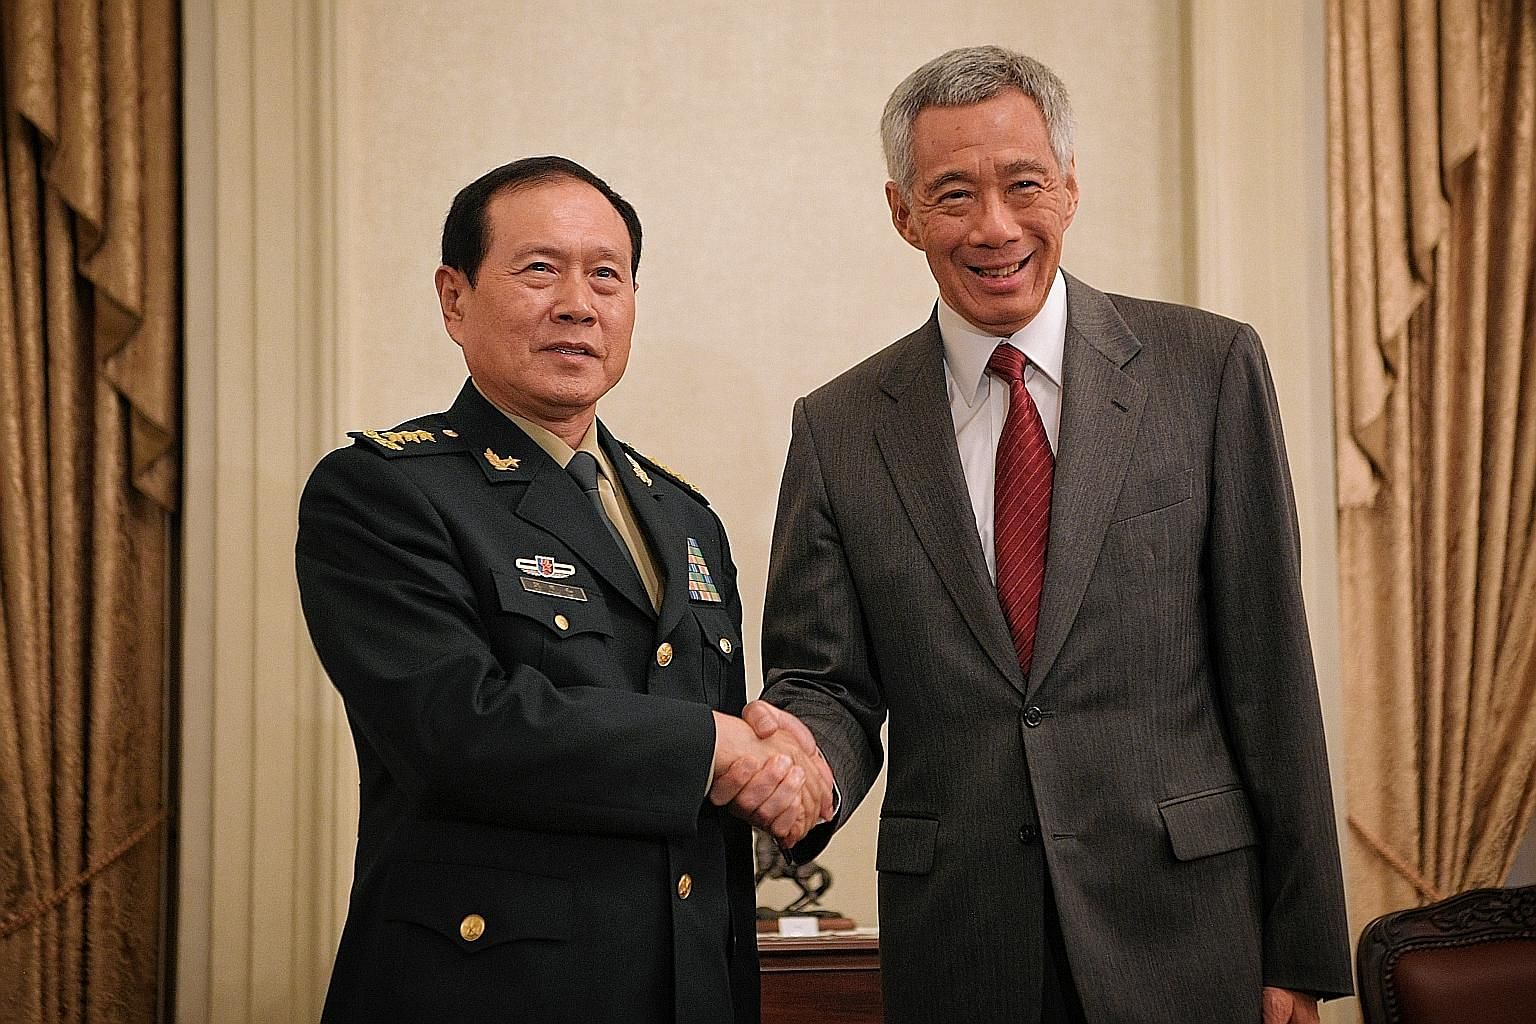 Chinese Defence Minister Wei Fenghe meeting Prime Minister Lee Hsien Loong at the Istana yesterday. They affirmed the longstanding, warm and friendly bilateral relations between Singapore and China, which have progressed steadily over the years, said